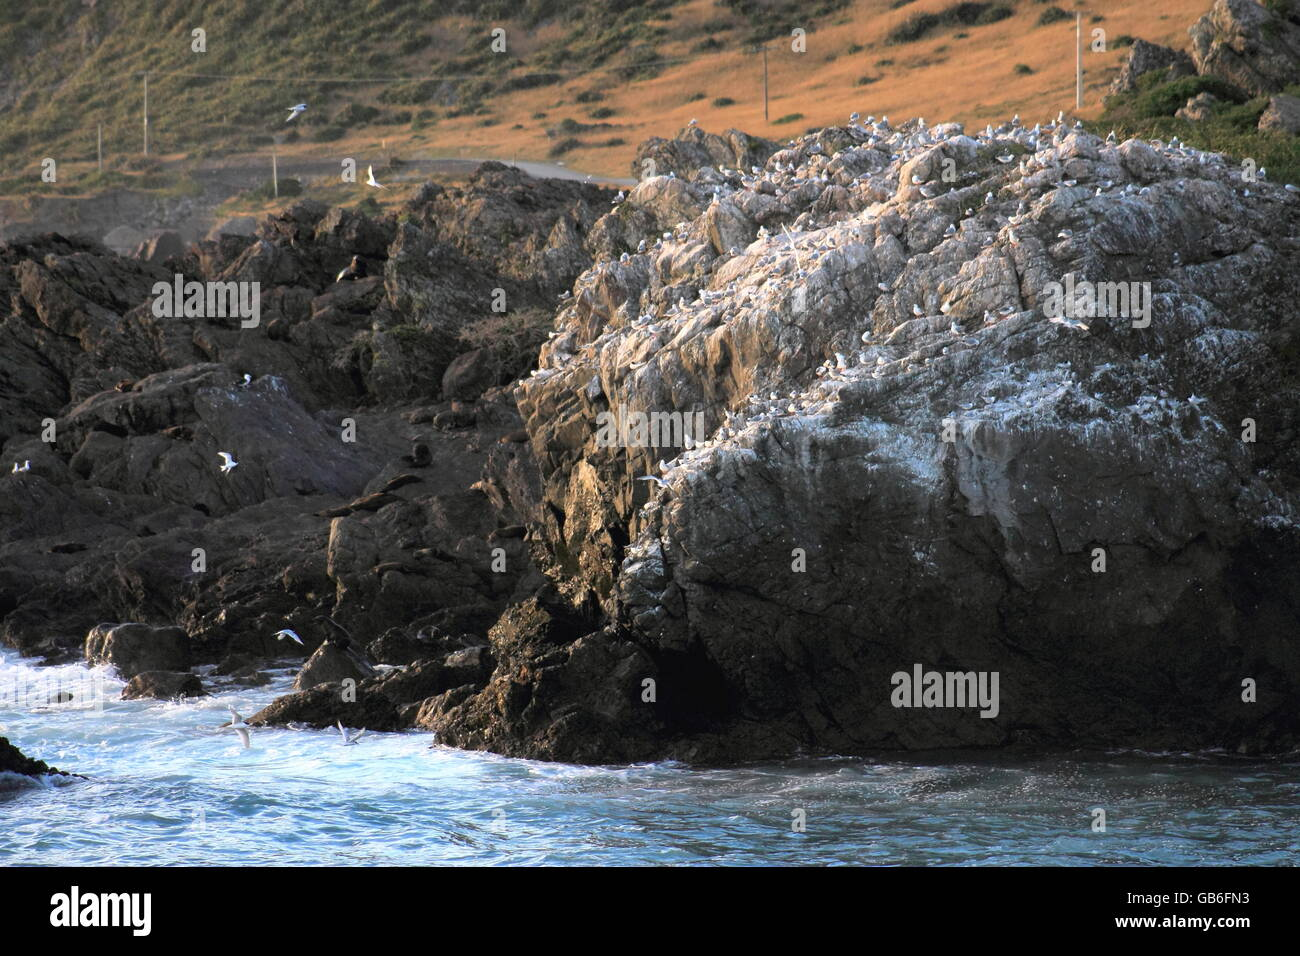 Seagull and Seal Colony - Stock Image